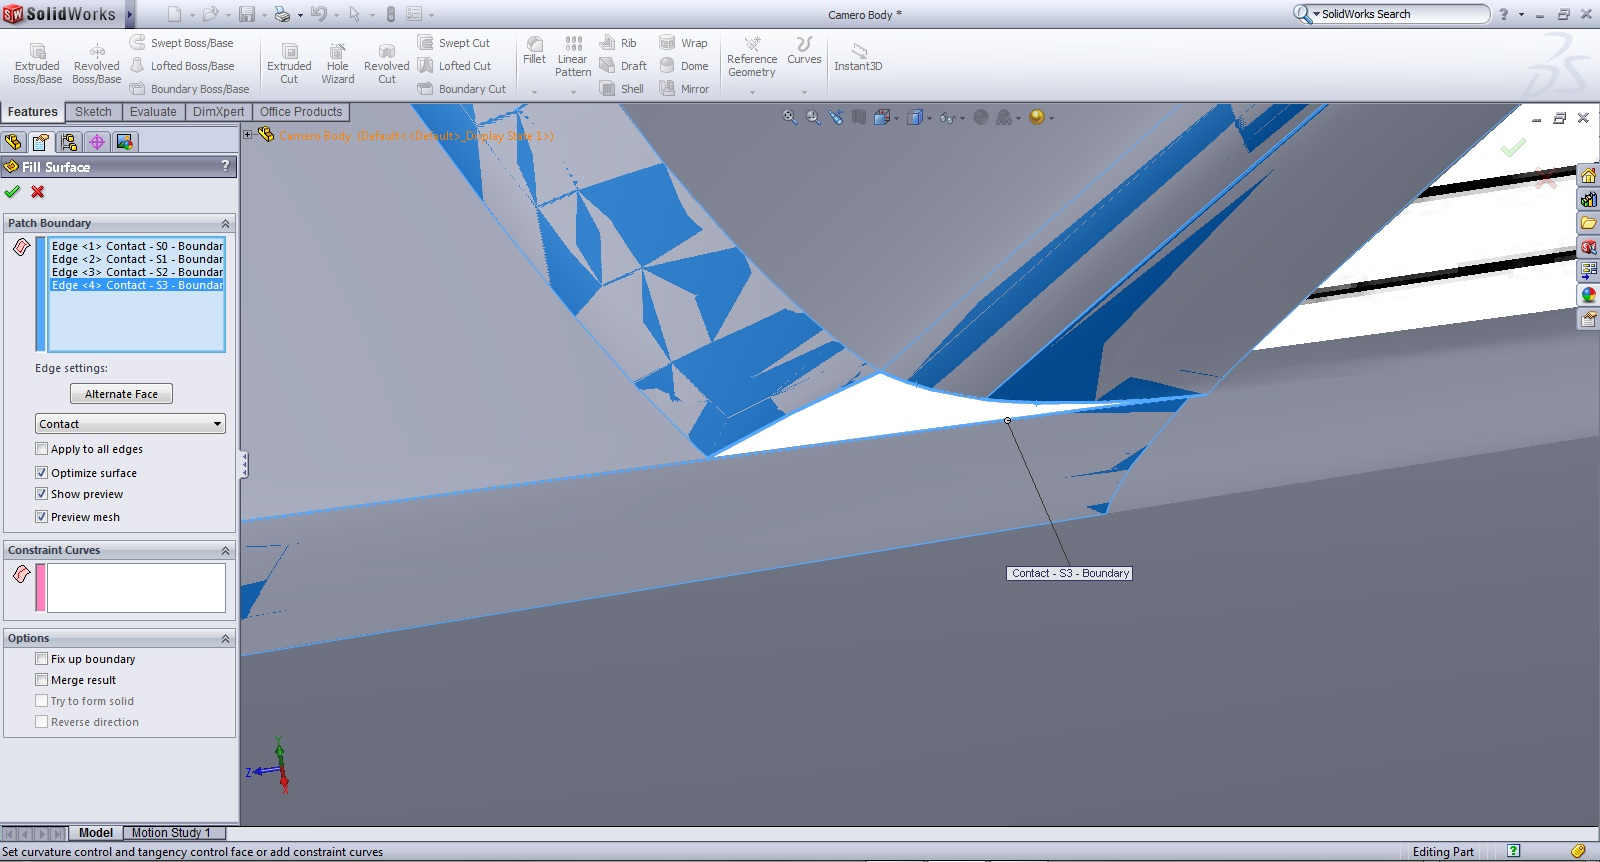 Tutorial: Filled Surfaces in Solidworks | GrabCAD Tutorials